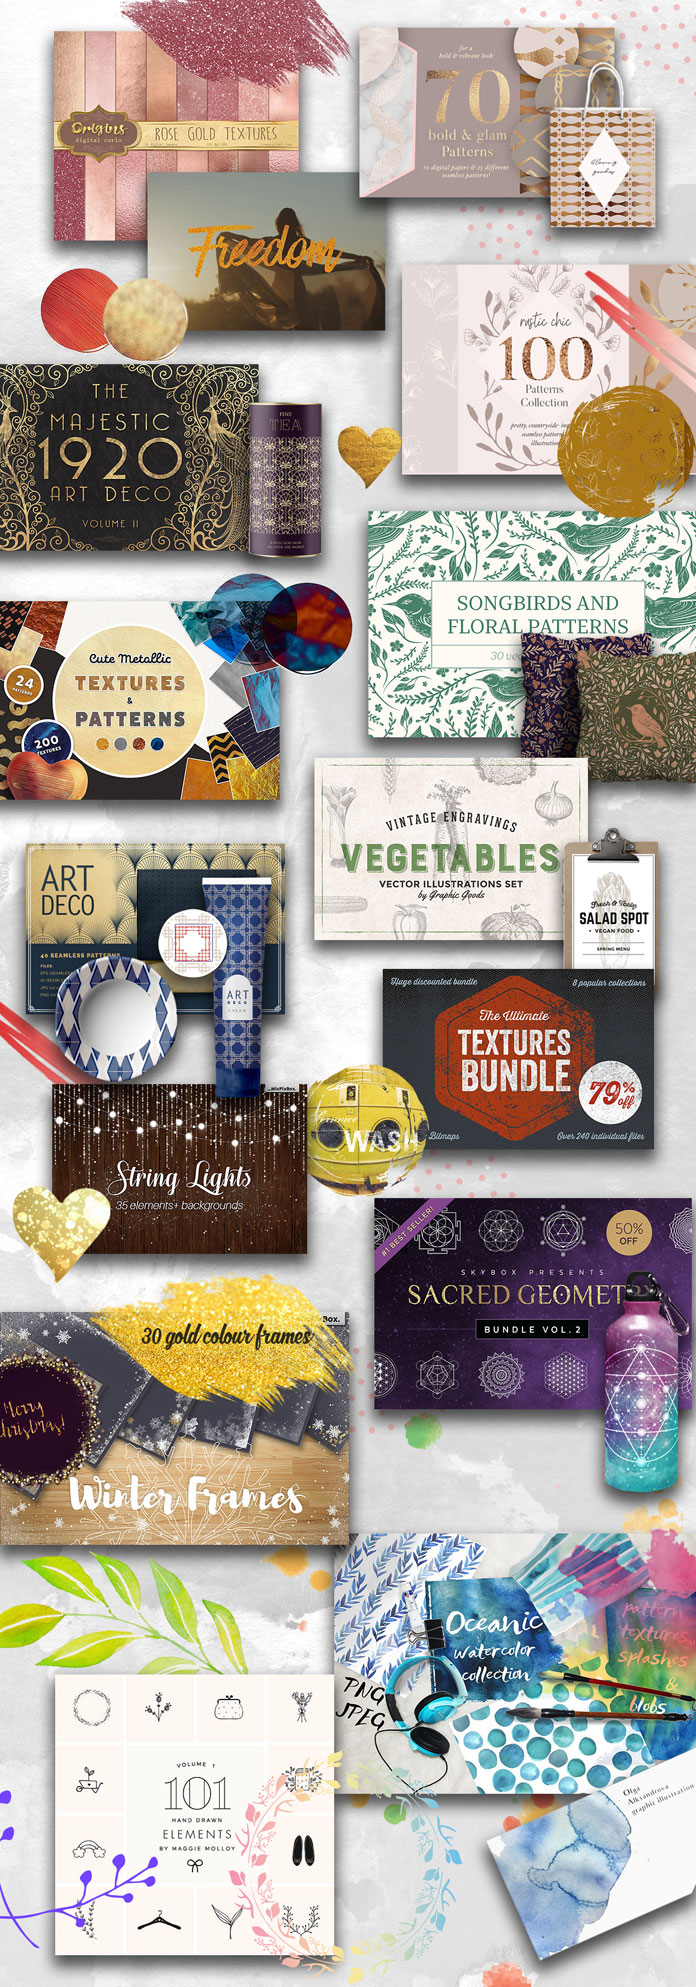 November Design Bundle from Pixelo with 3038 graphic elements plus commercial license.